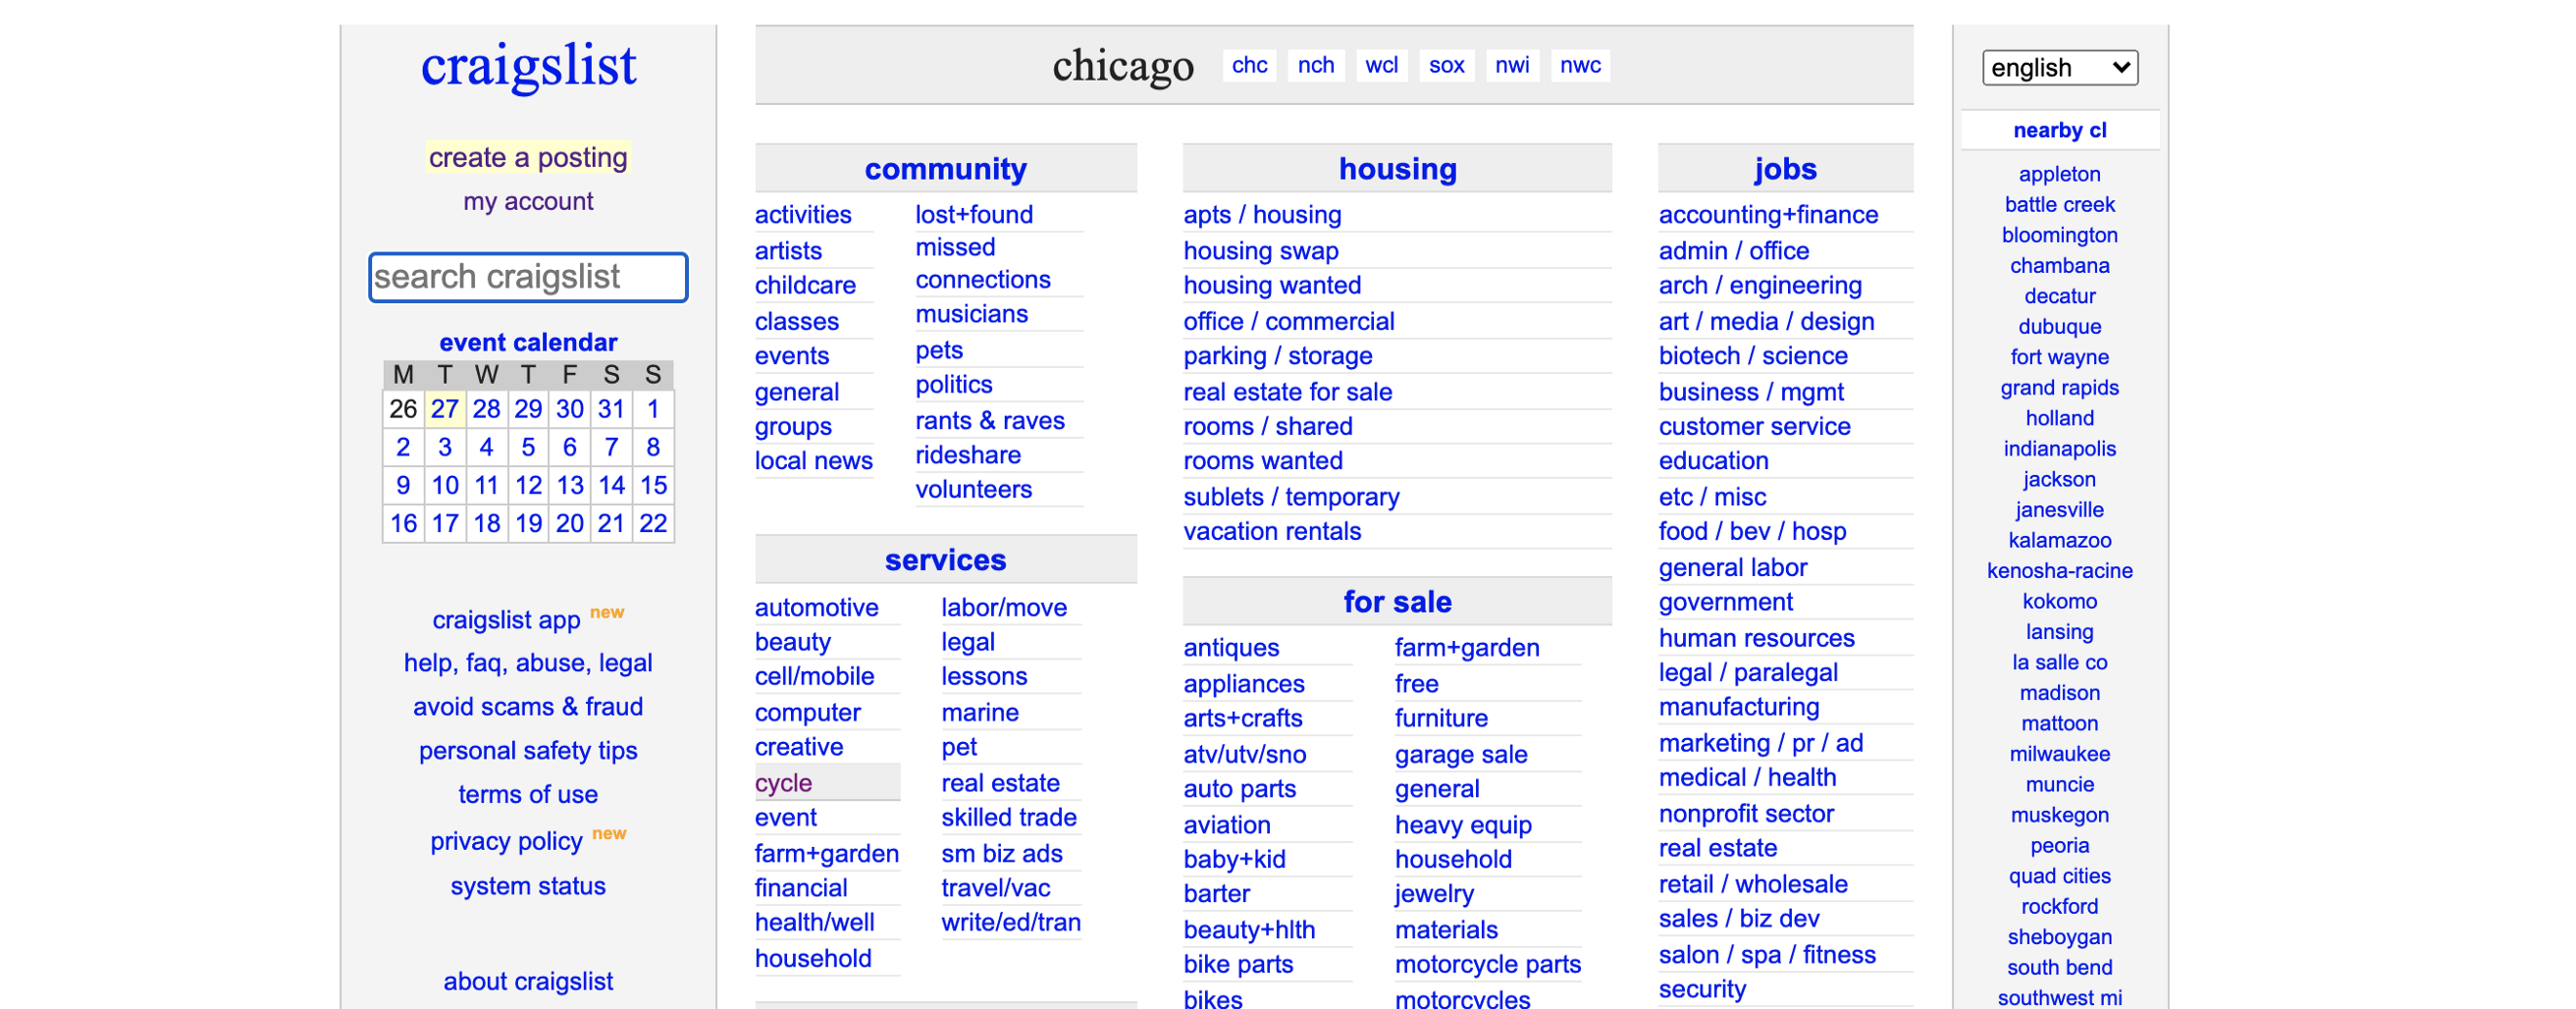 Leveraging Craigslist For Ux Research By Jeremy Abrams Jul 2021 Ux Collective